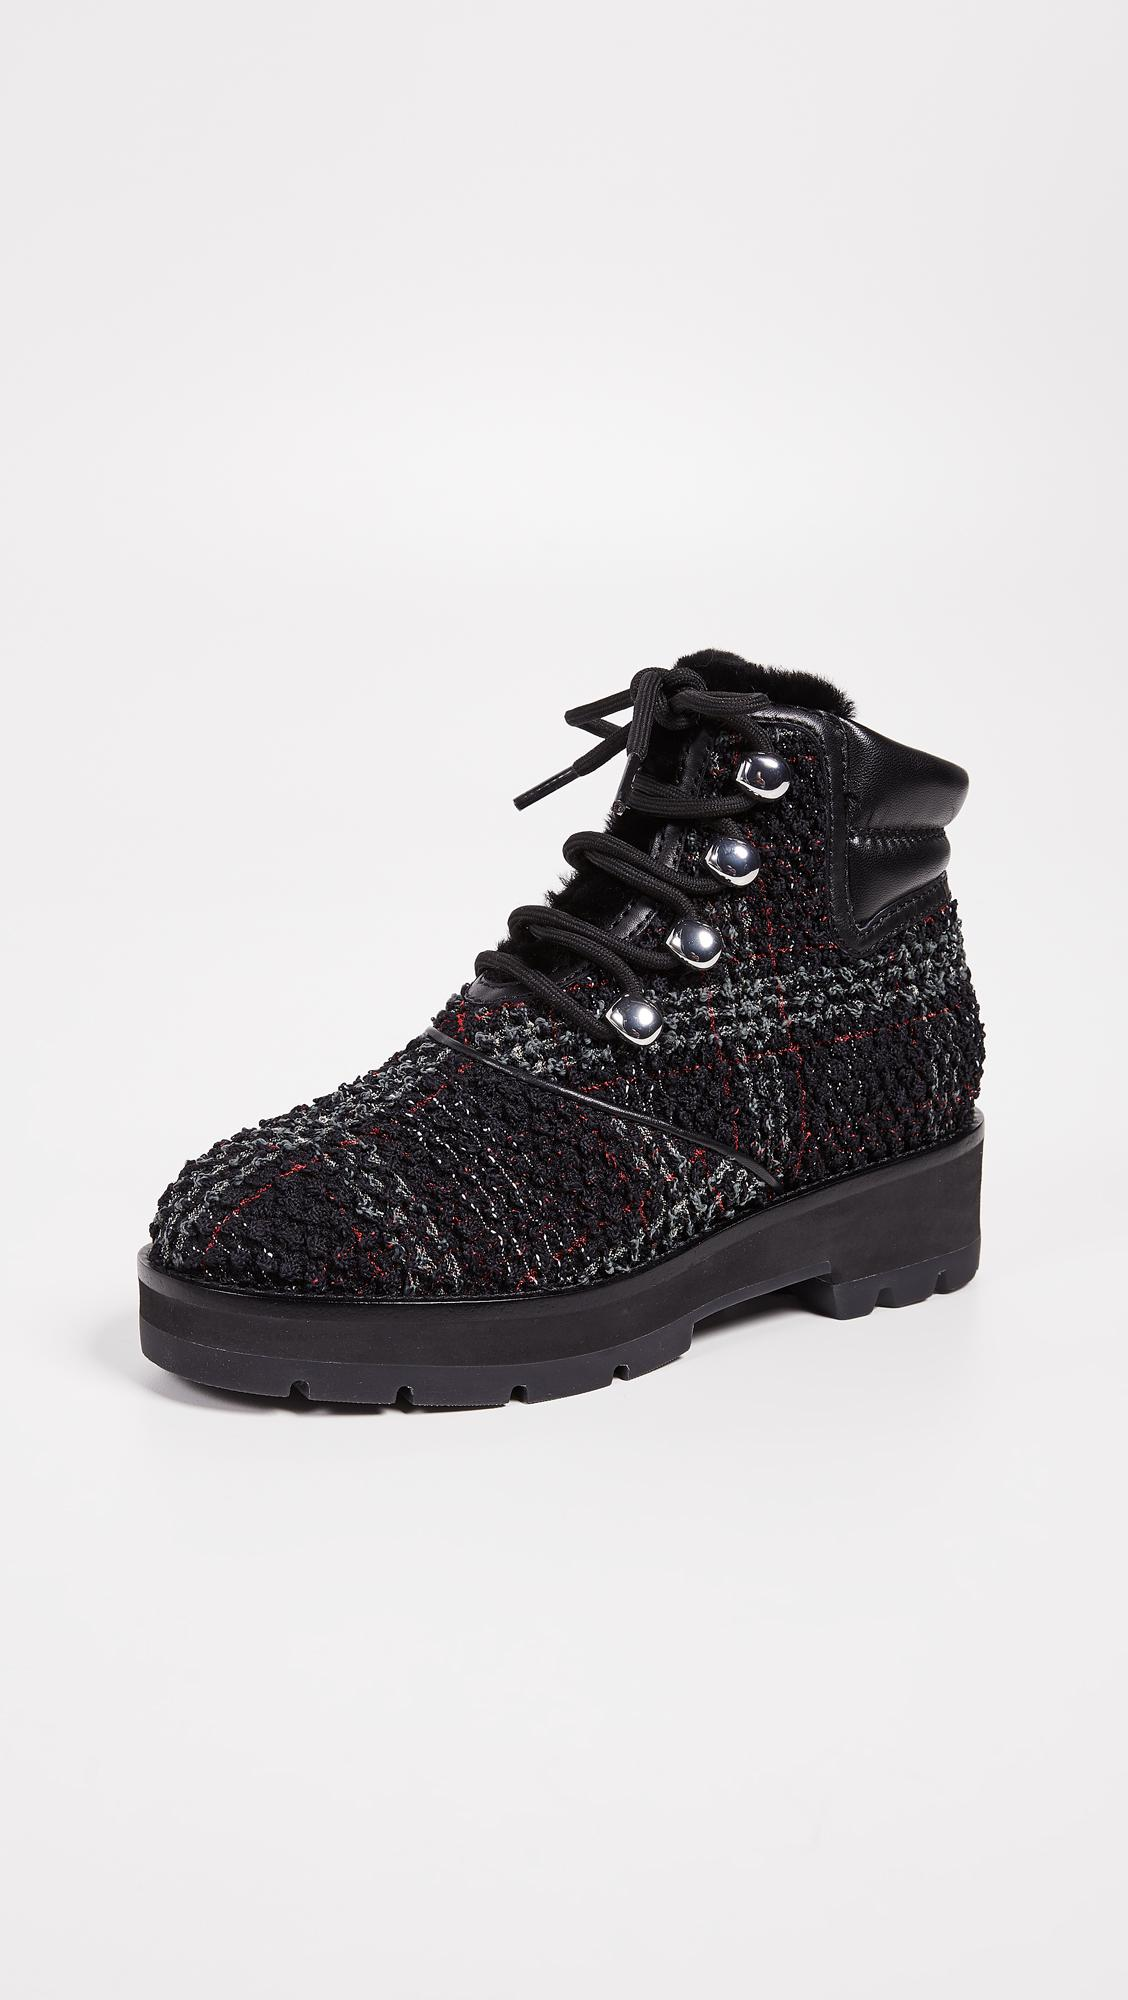 ed6deaae72802 Lyst - 3.1 Phillip Lim Dylan Lace Up Hiking Boots in Black - Save 60%